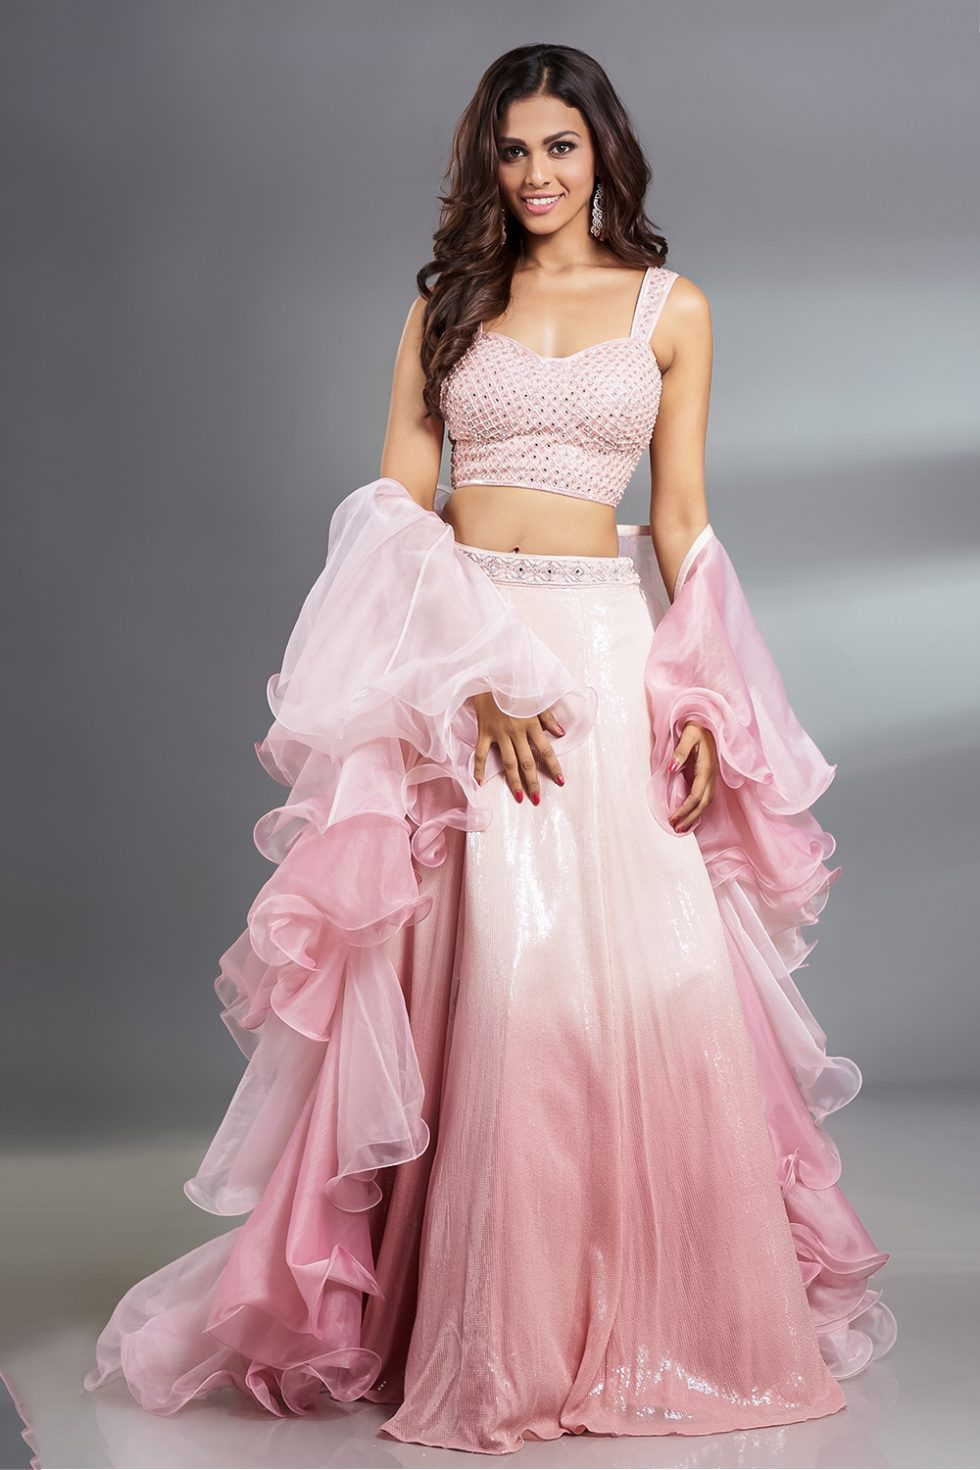 Powder pink lehenga set with a handwork blouse, paani sequin ombré skirt and ombré ruffled dupatta.